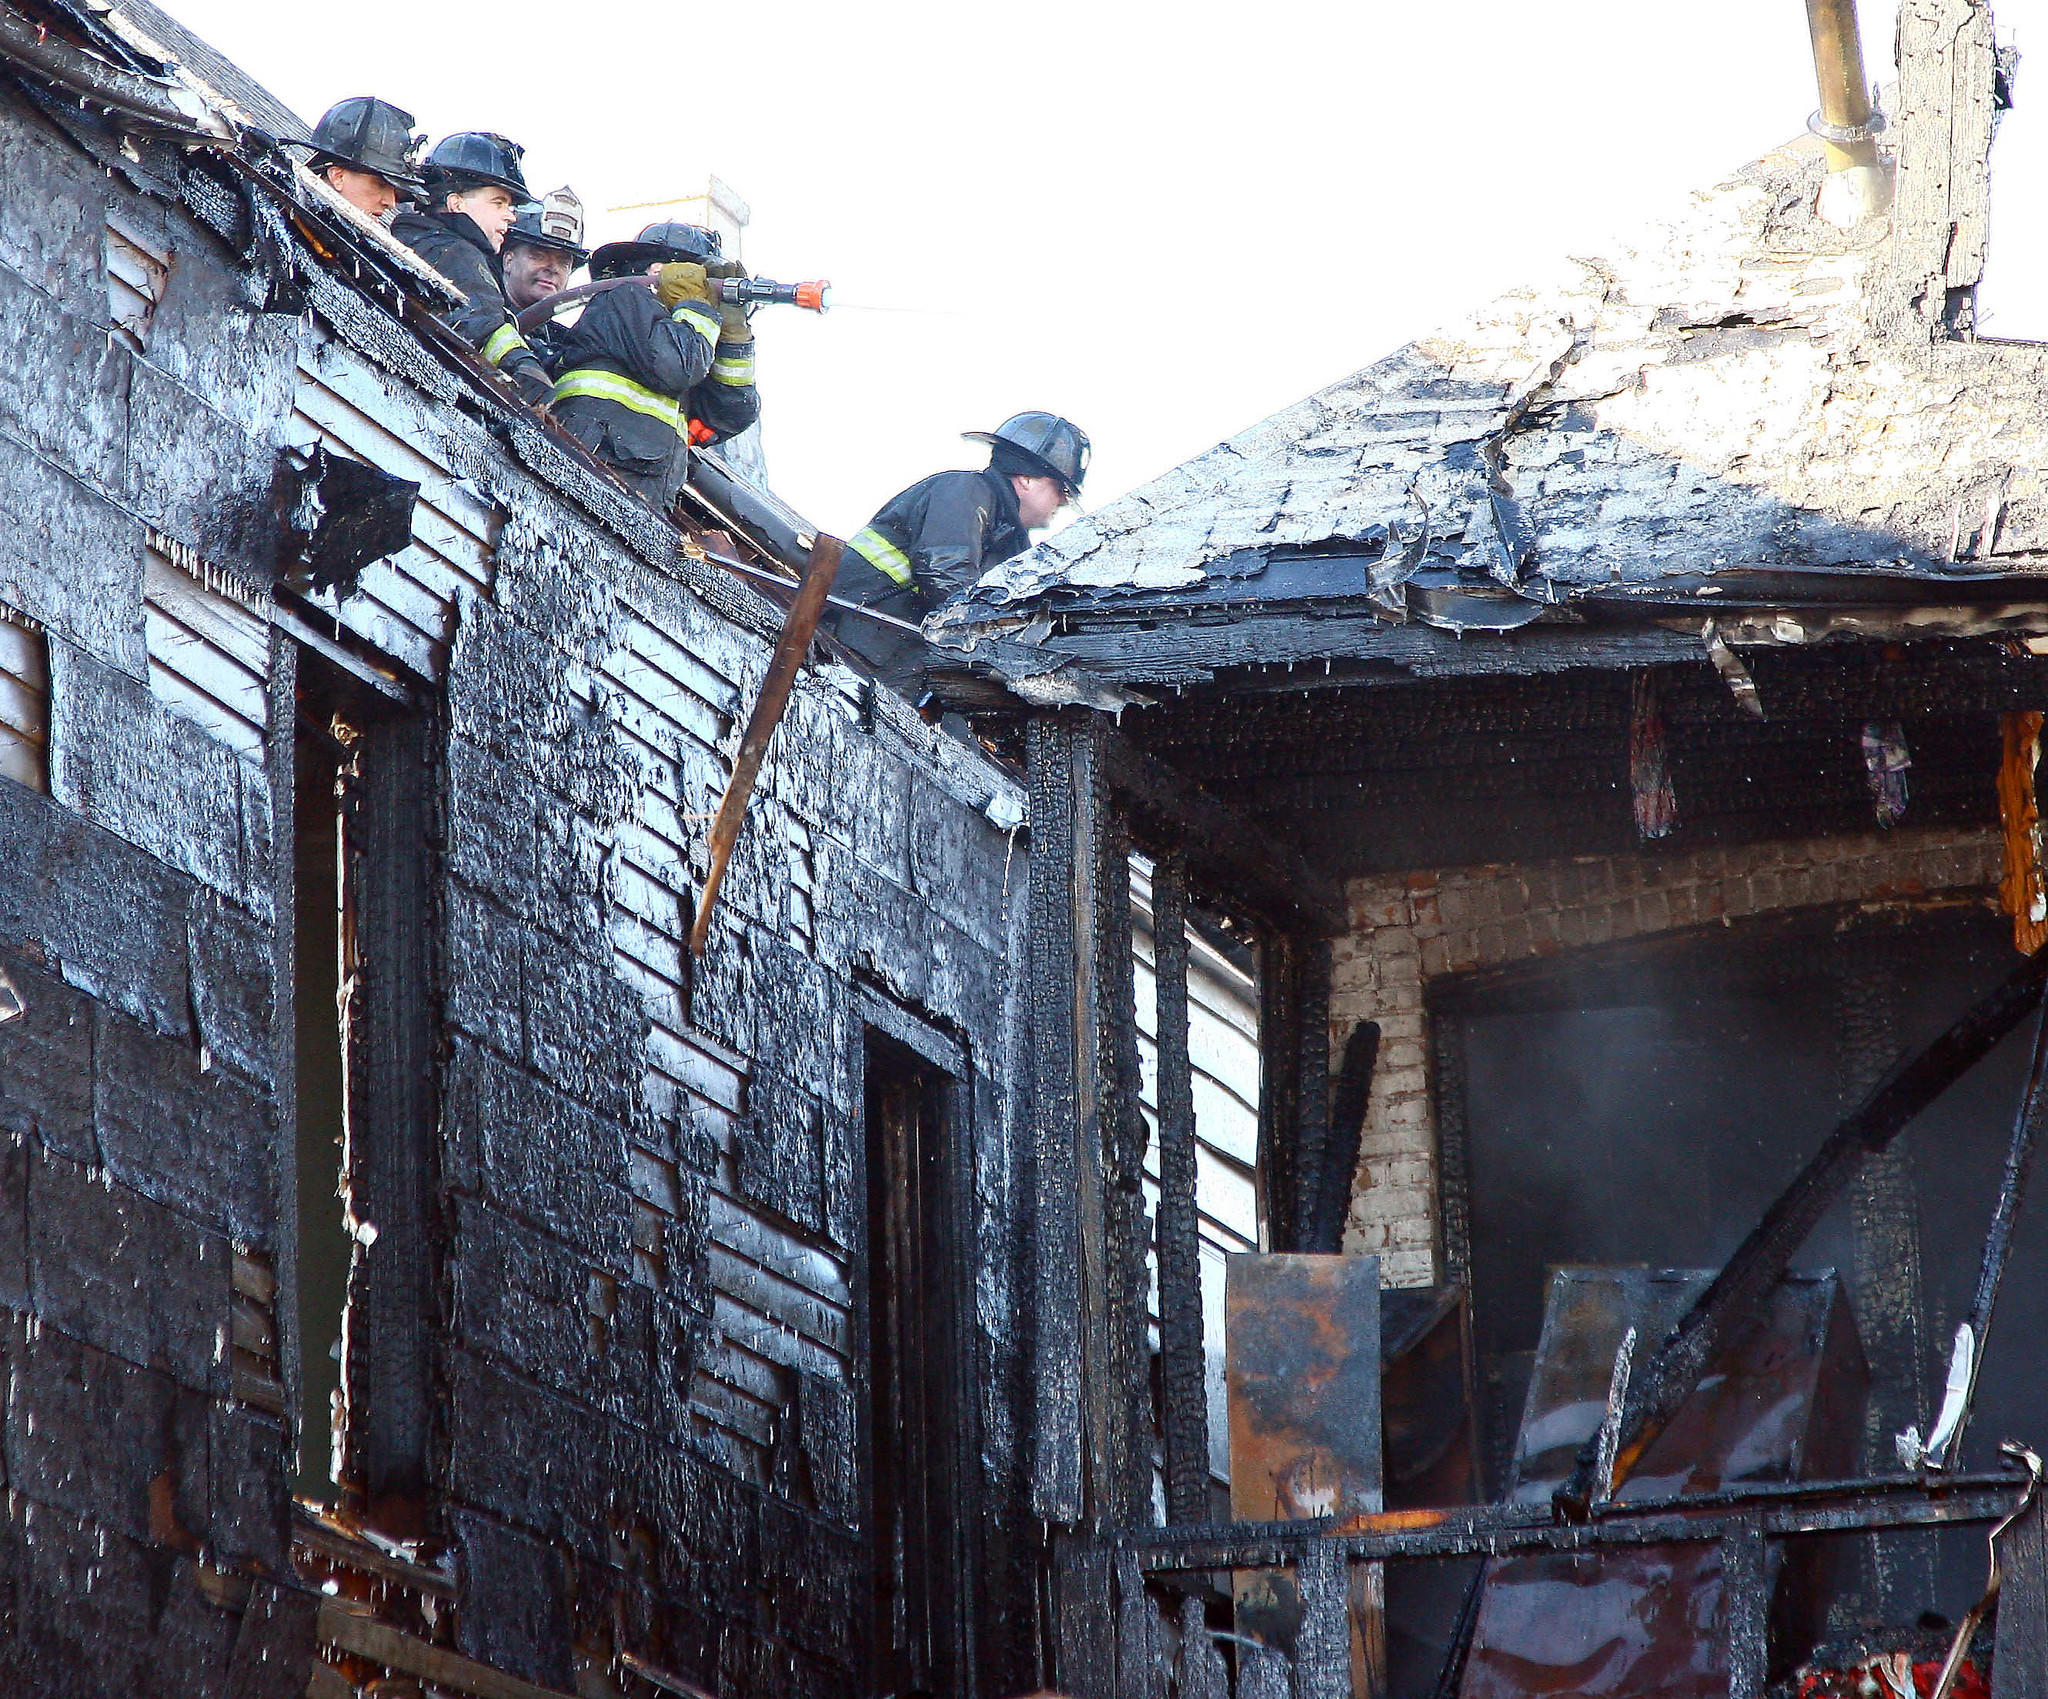 Chicago fire dept battle an extra alarm fire at 2521 w. 45th Place.